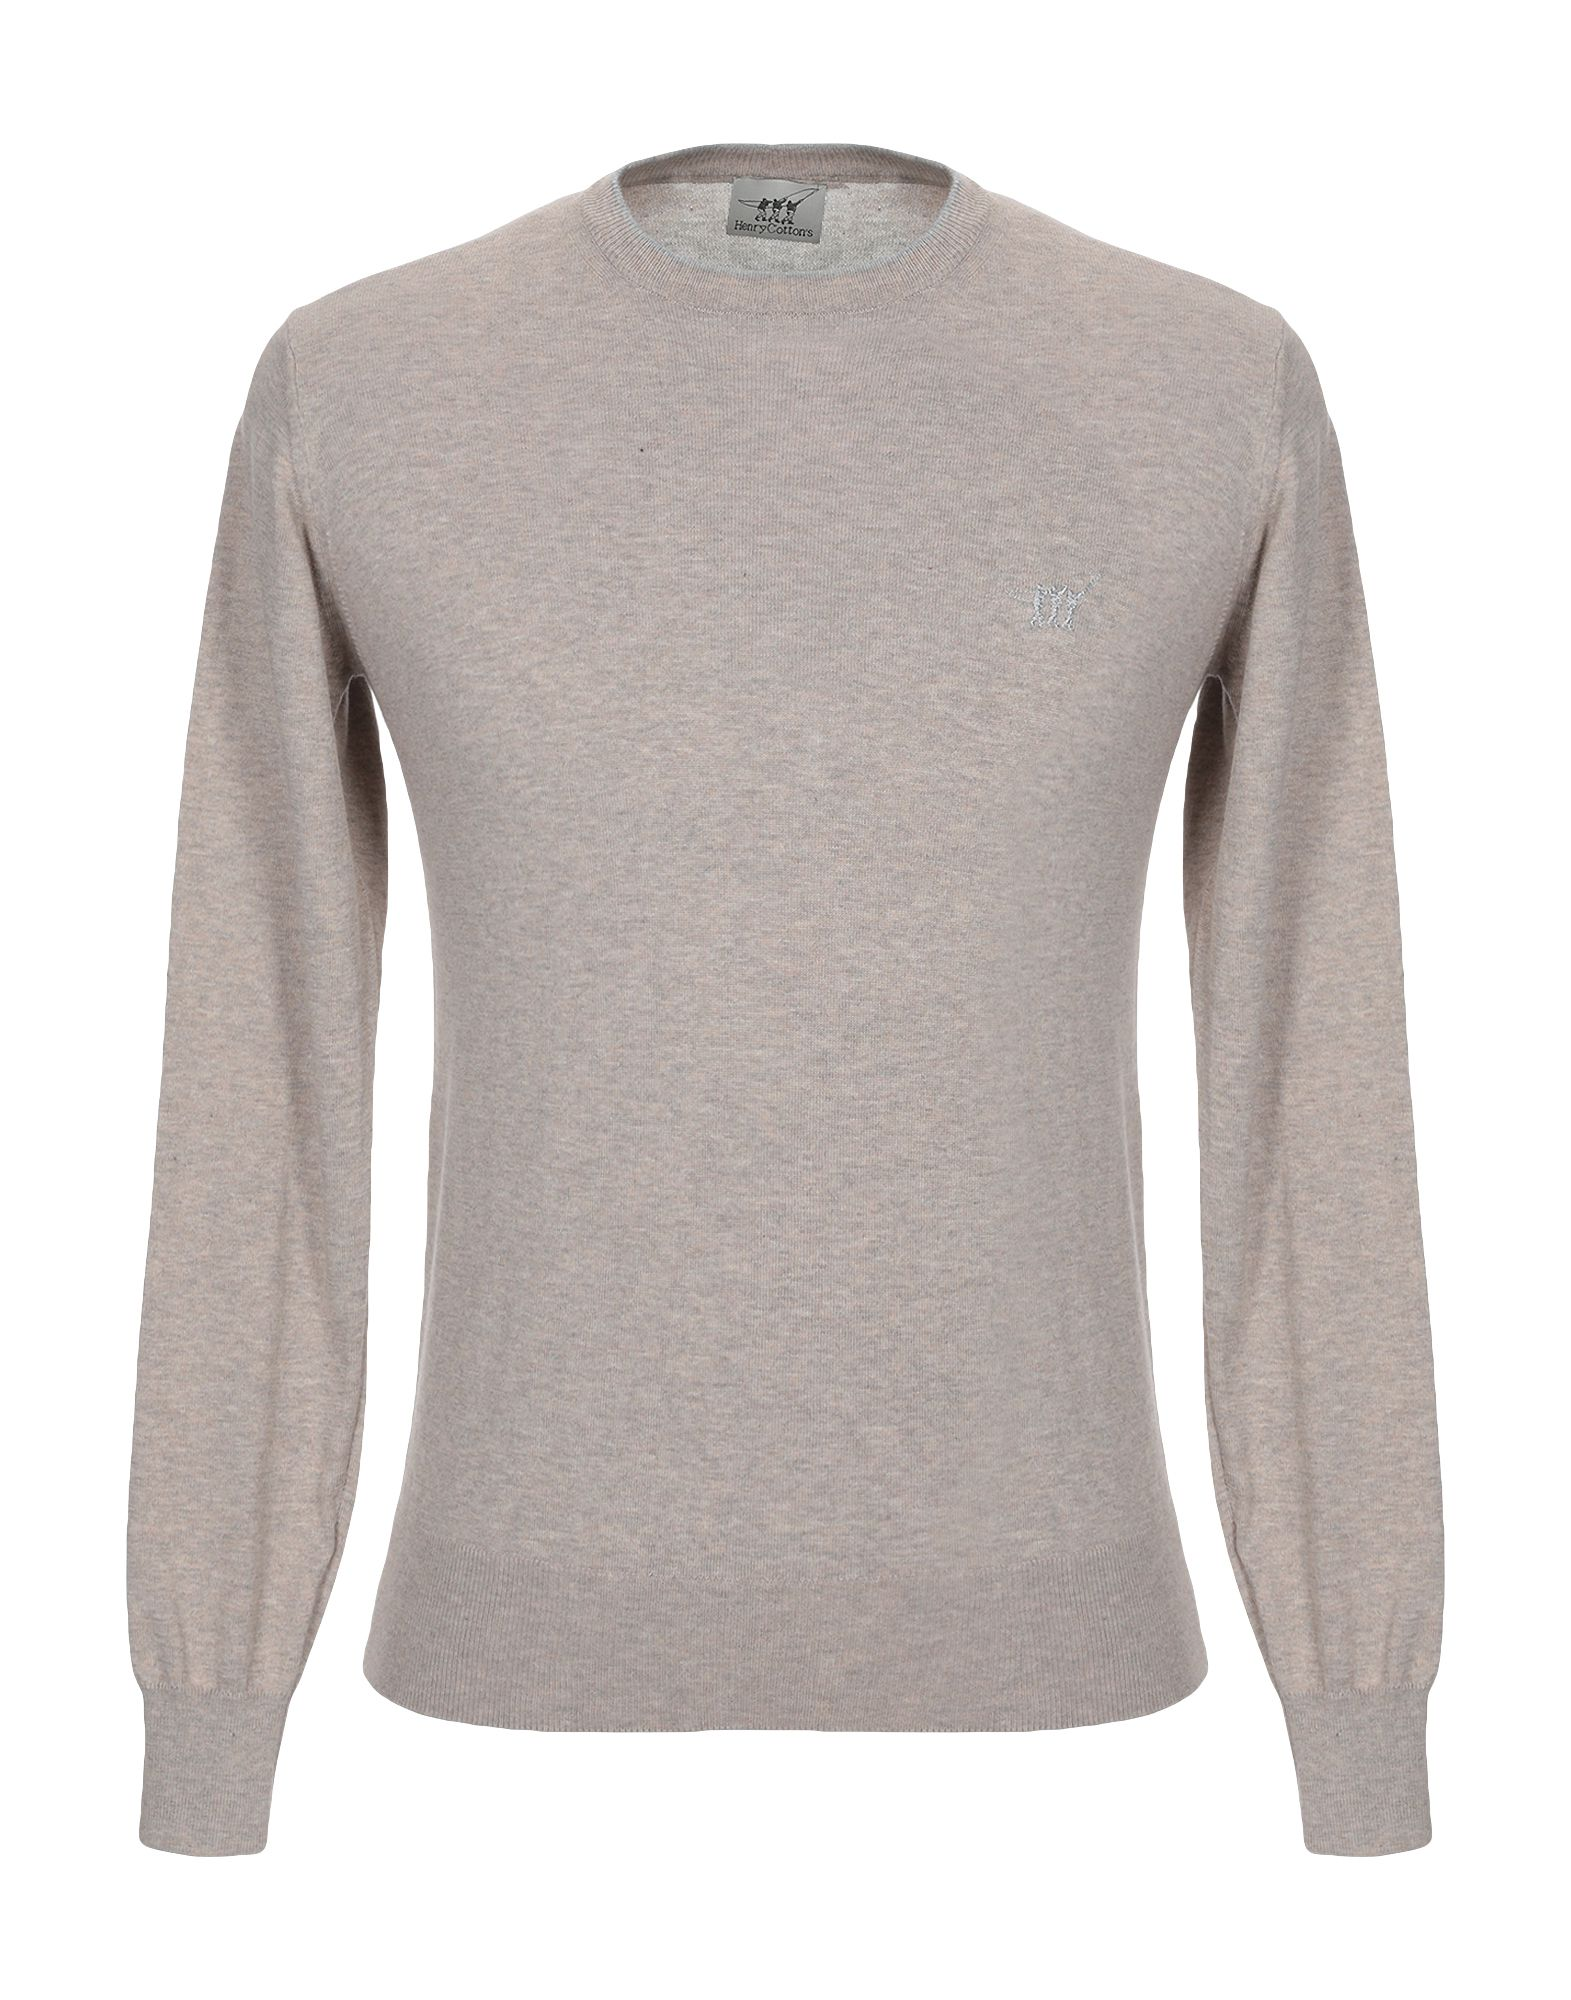 HENRY COTTON'S Sweaters - Item 39917973